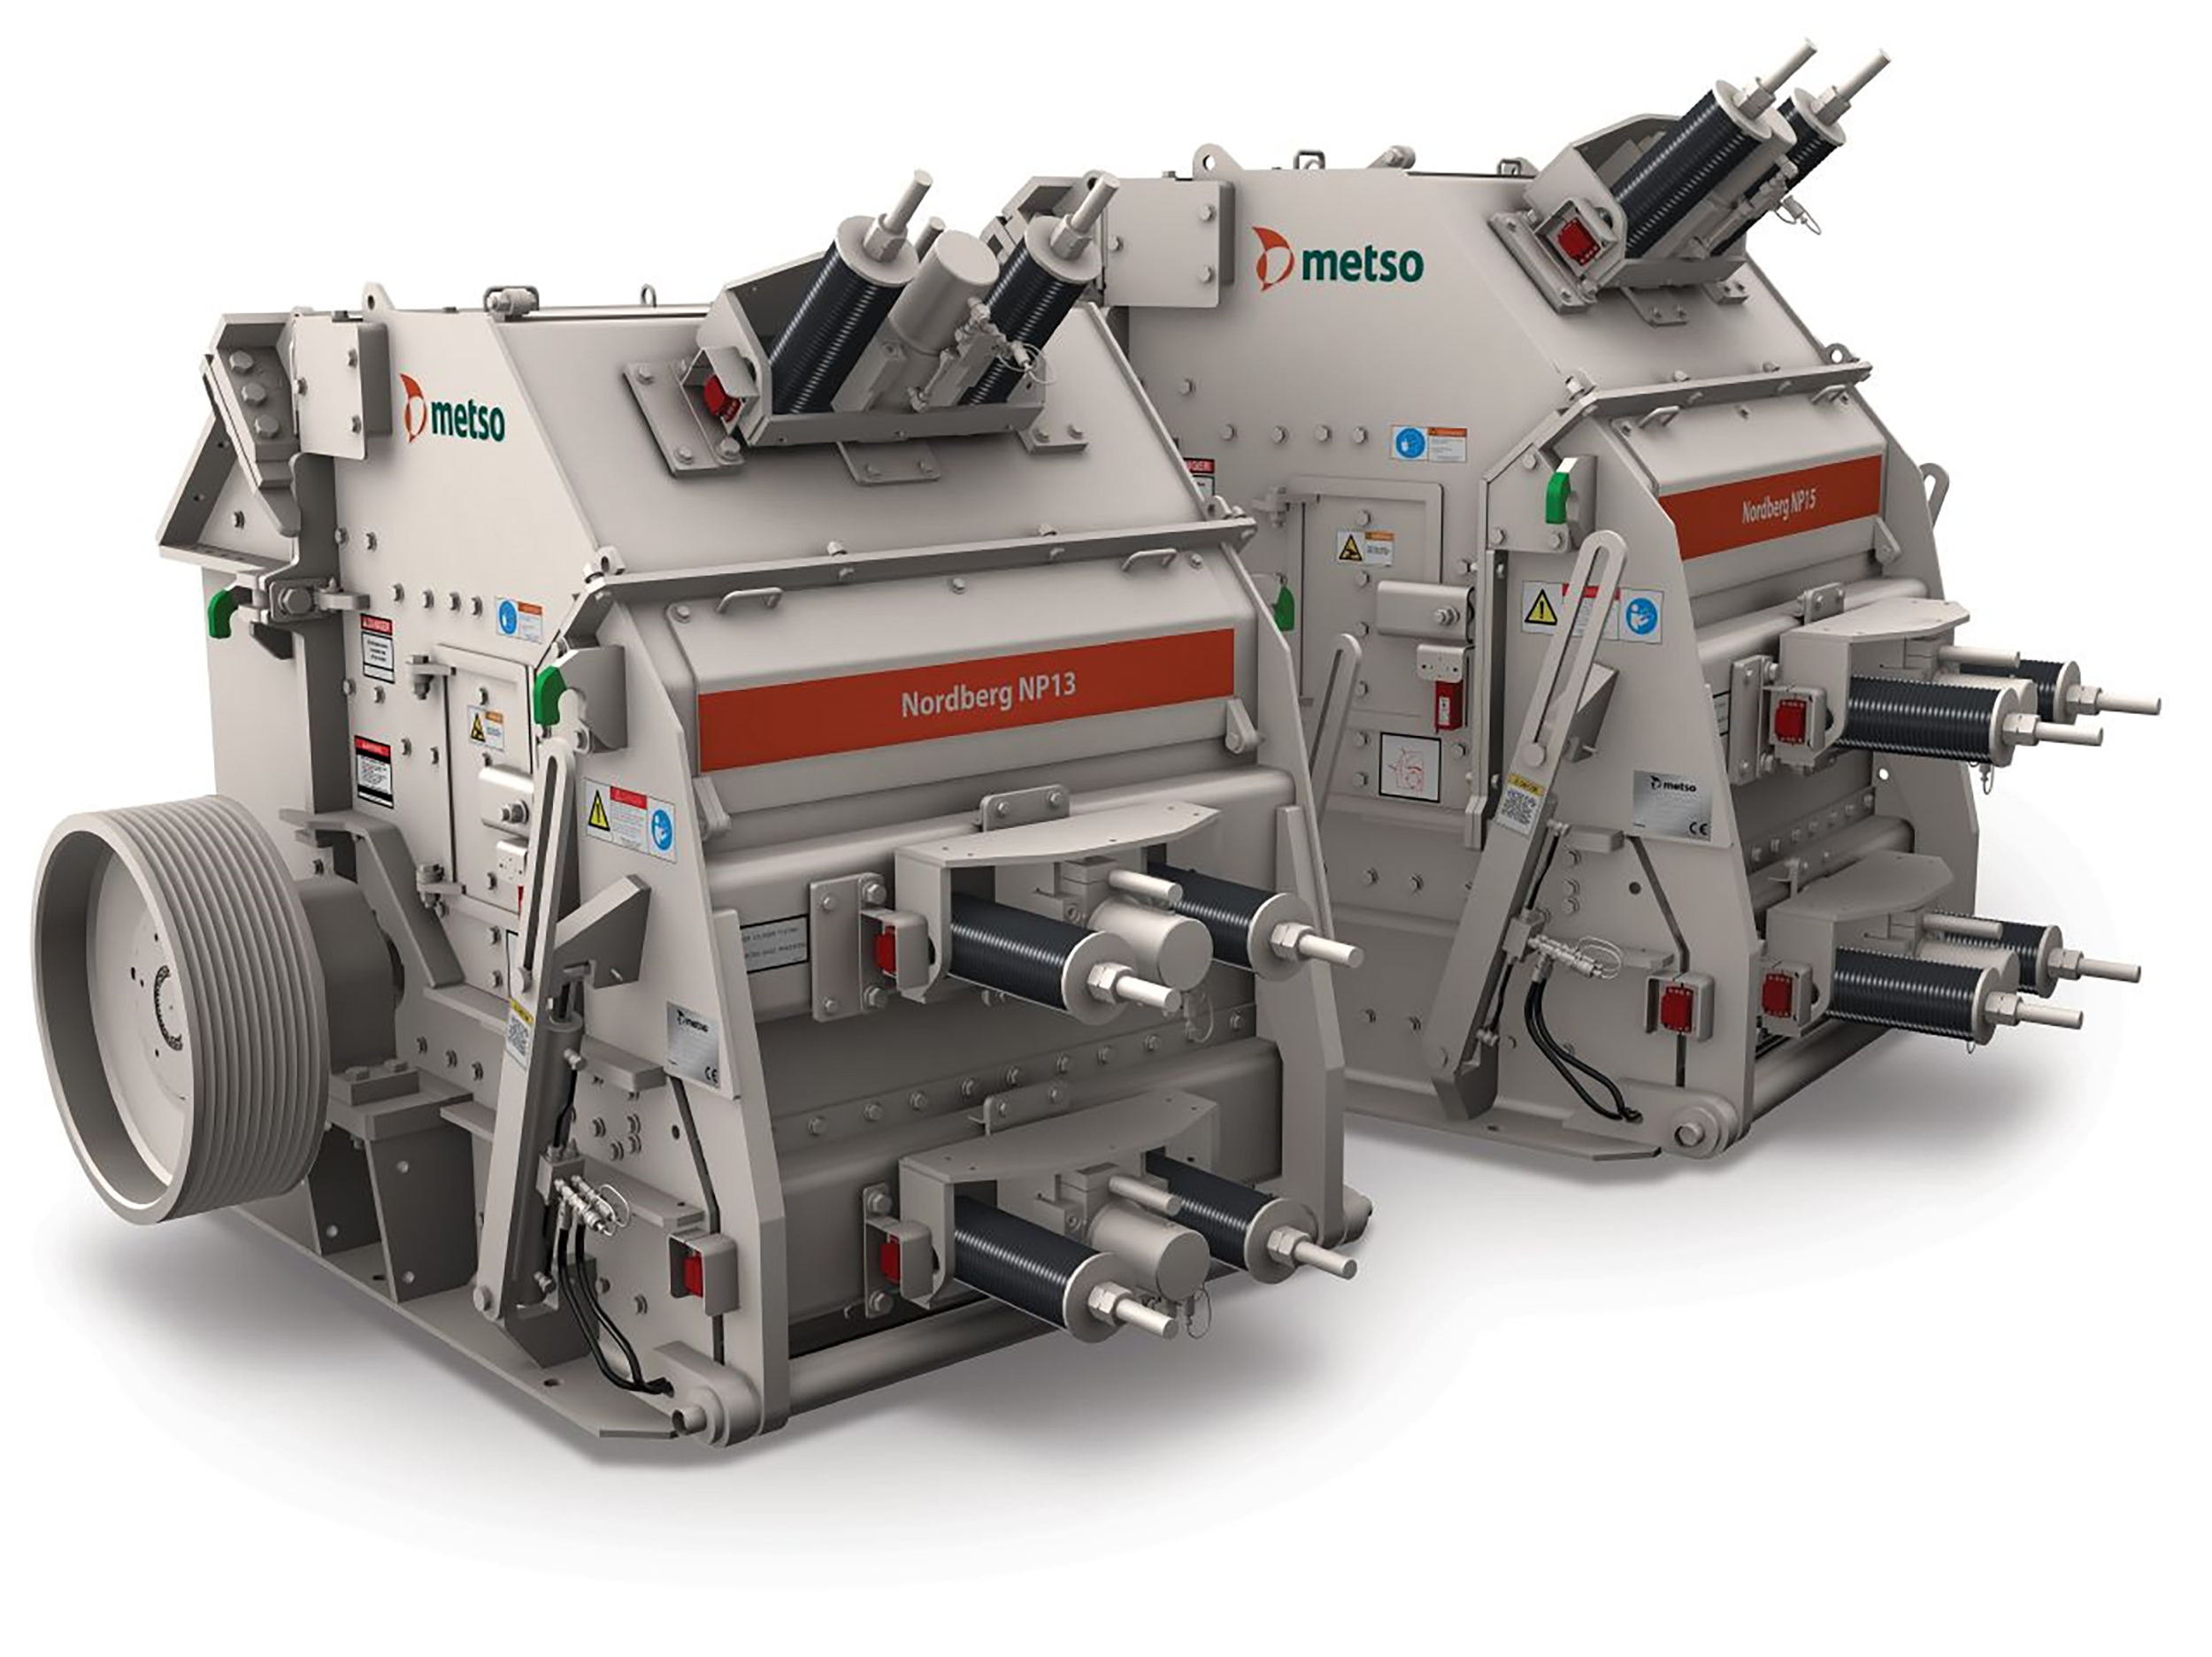 The Nordberg NP13 and NP15 impact crushers – two of the high-profile models in the Metso range of fixed crushers now being marketed in Ireland by McHale Plant Sales.